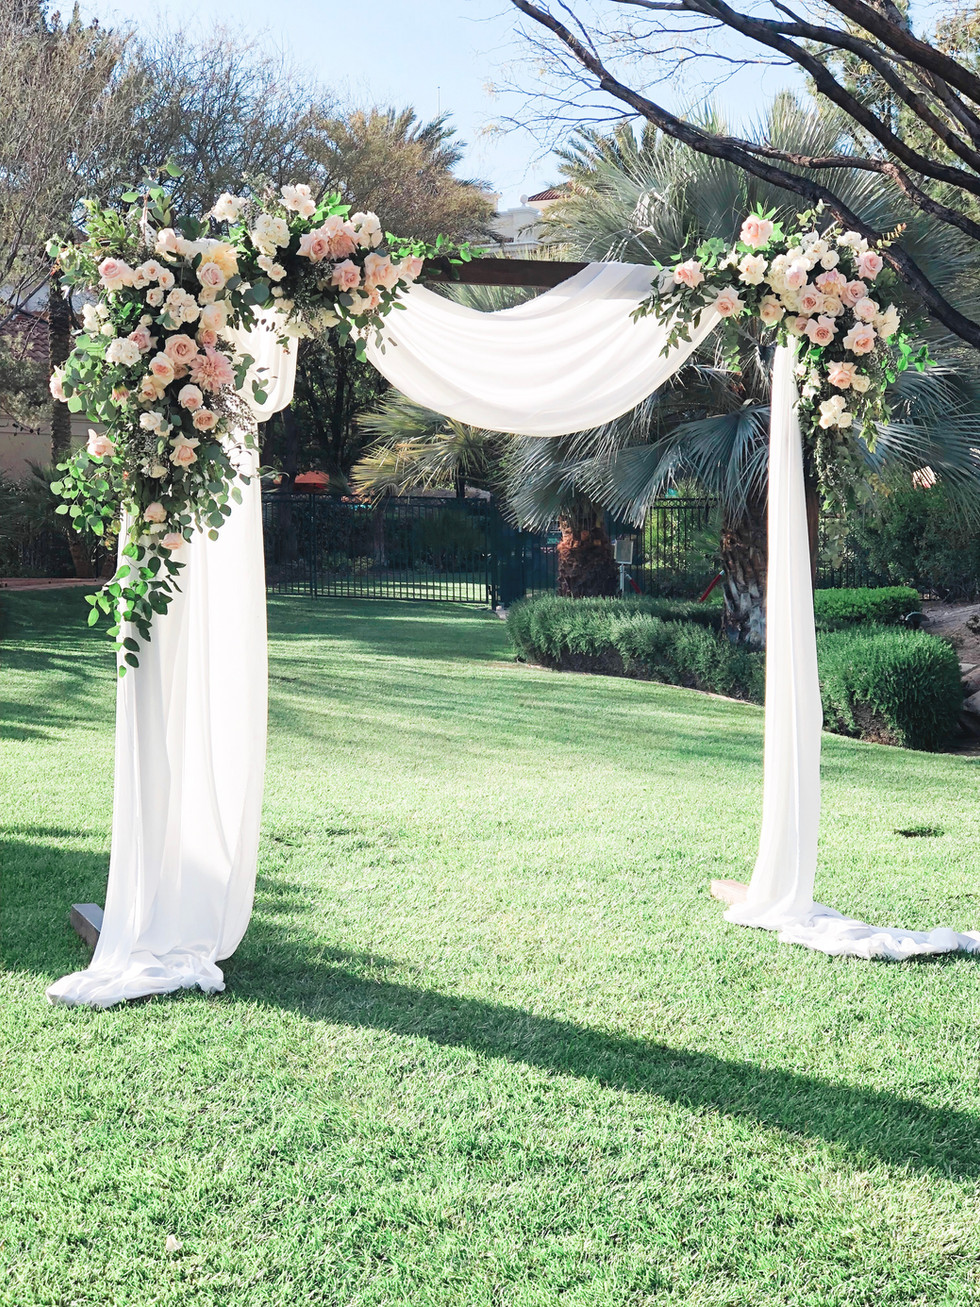 Wedding arch with blush and white flowers and loosley draped fabric.